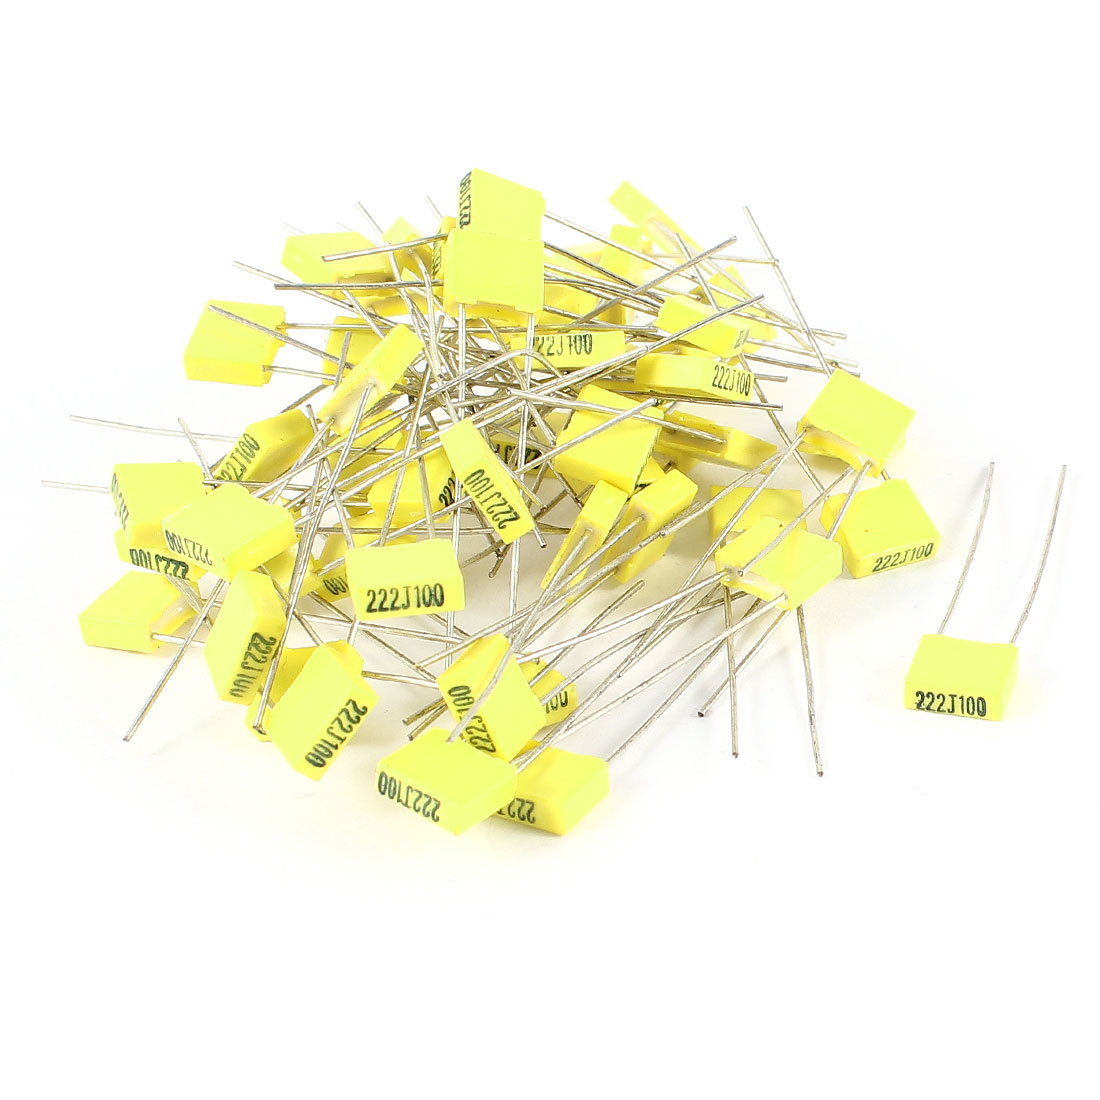 50 Pieces 100V 2.2NF Metal Radial Lead Box Type Film Correction Capacitor Yellow